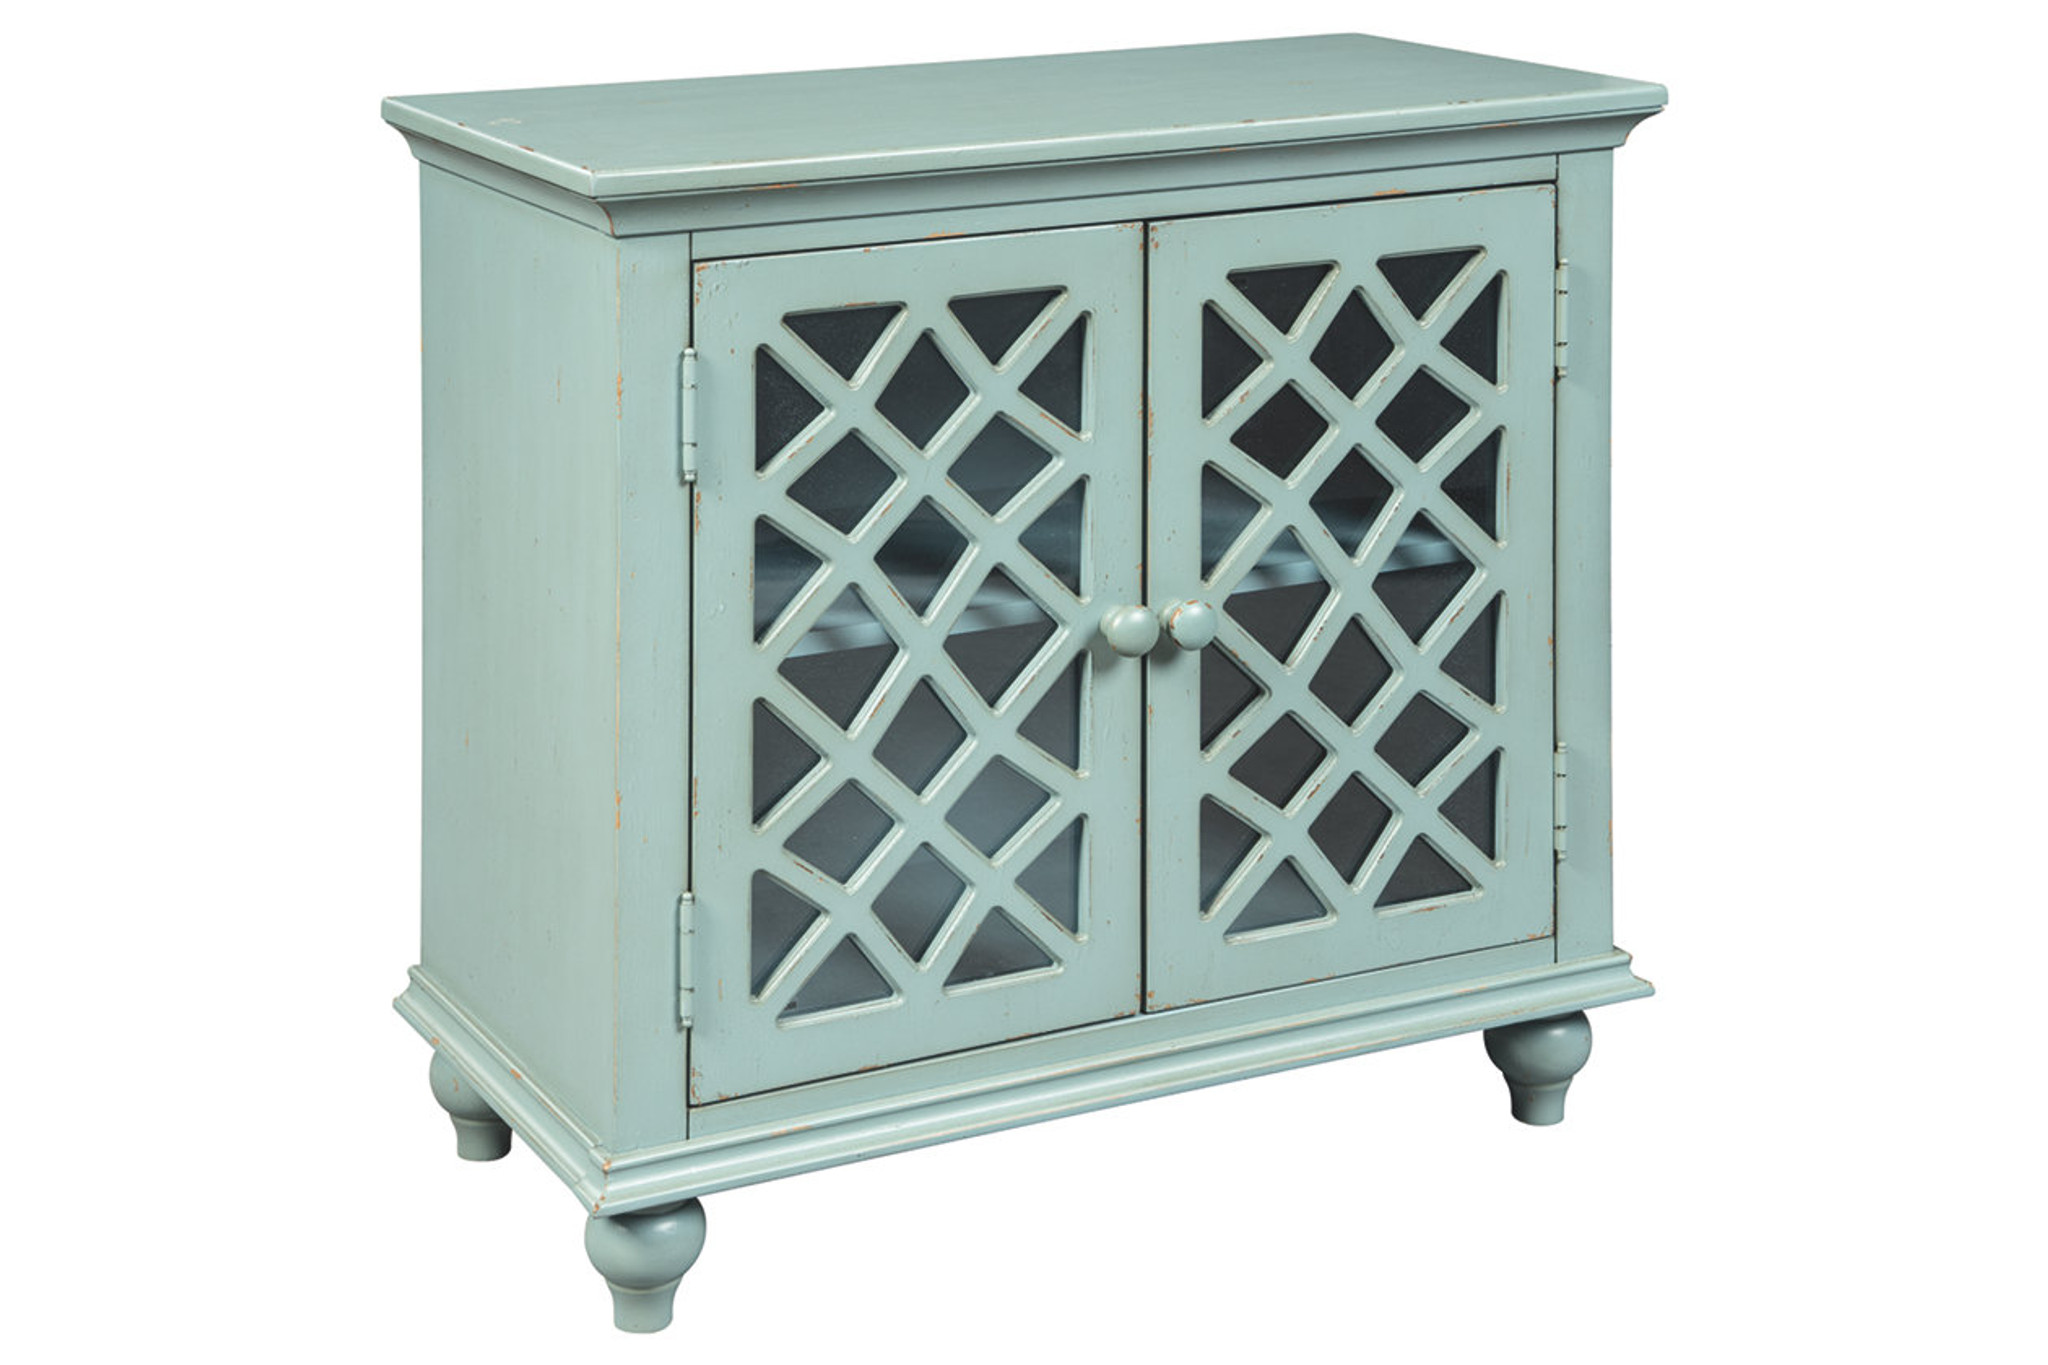 A4000061 Mirimyn Antique Teal Accent Cabinet Collection By Ashley Furniture